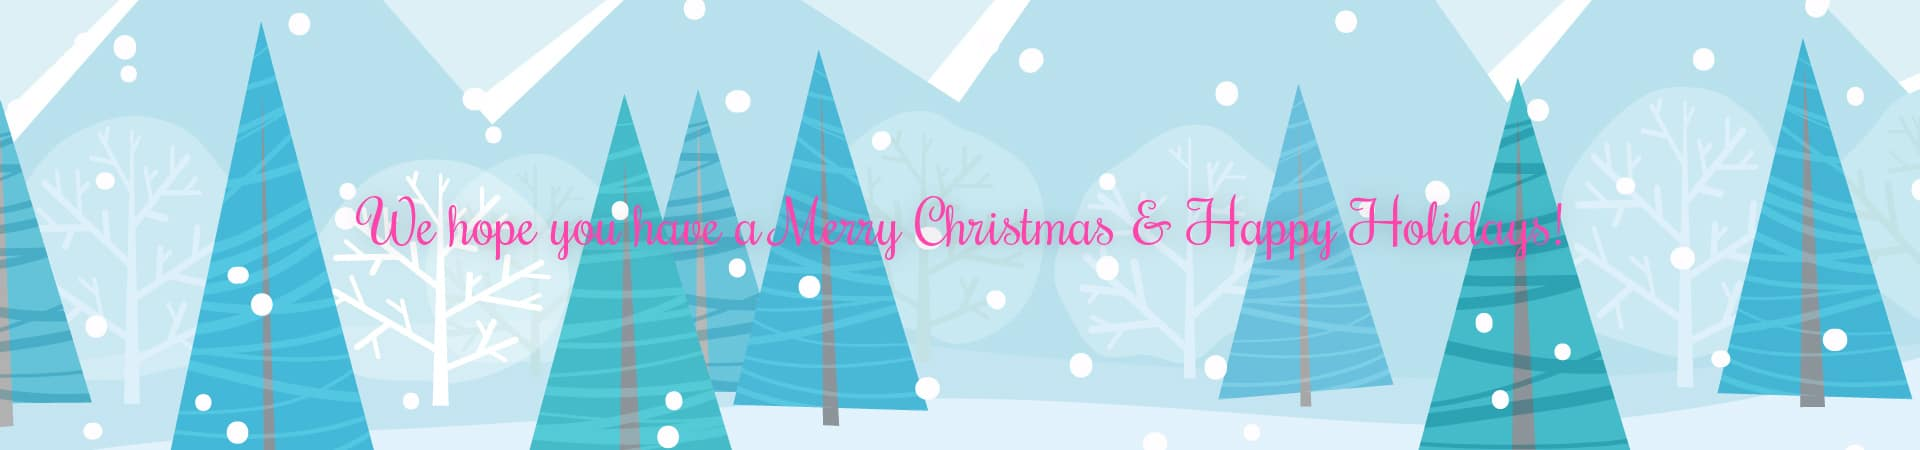 Merry Christmas & Happy Holidays from Autobahn Volkswagen Fort Worth!